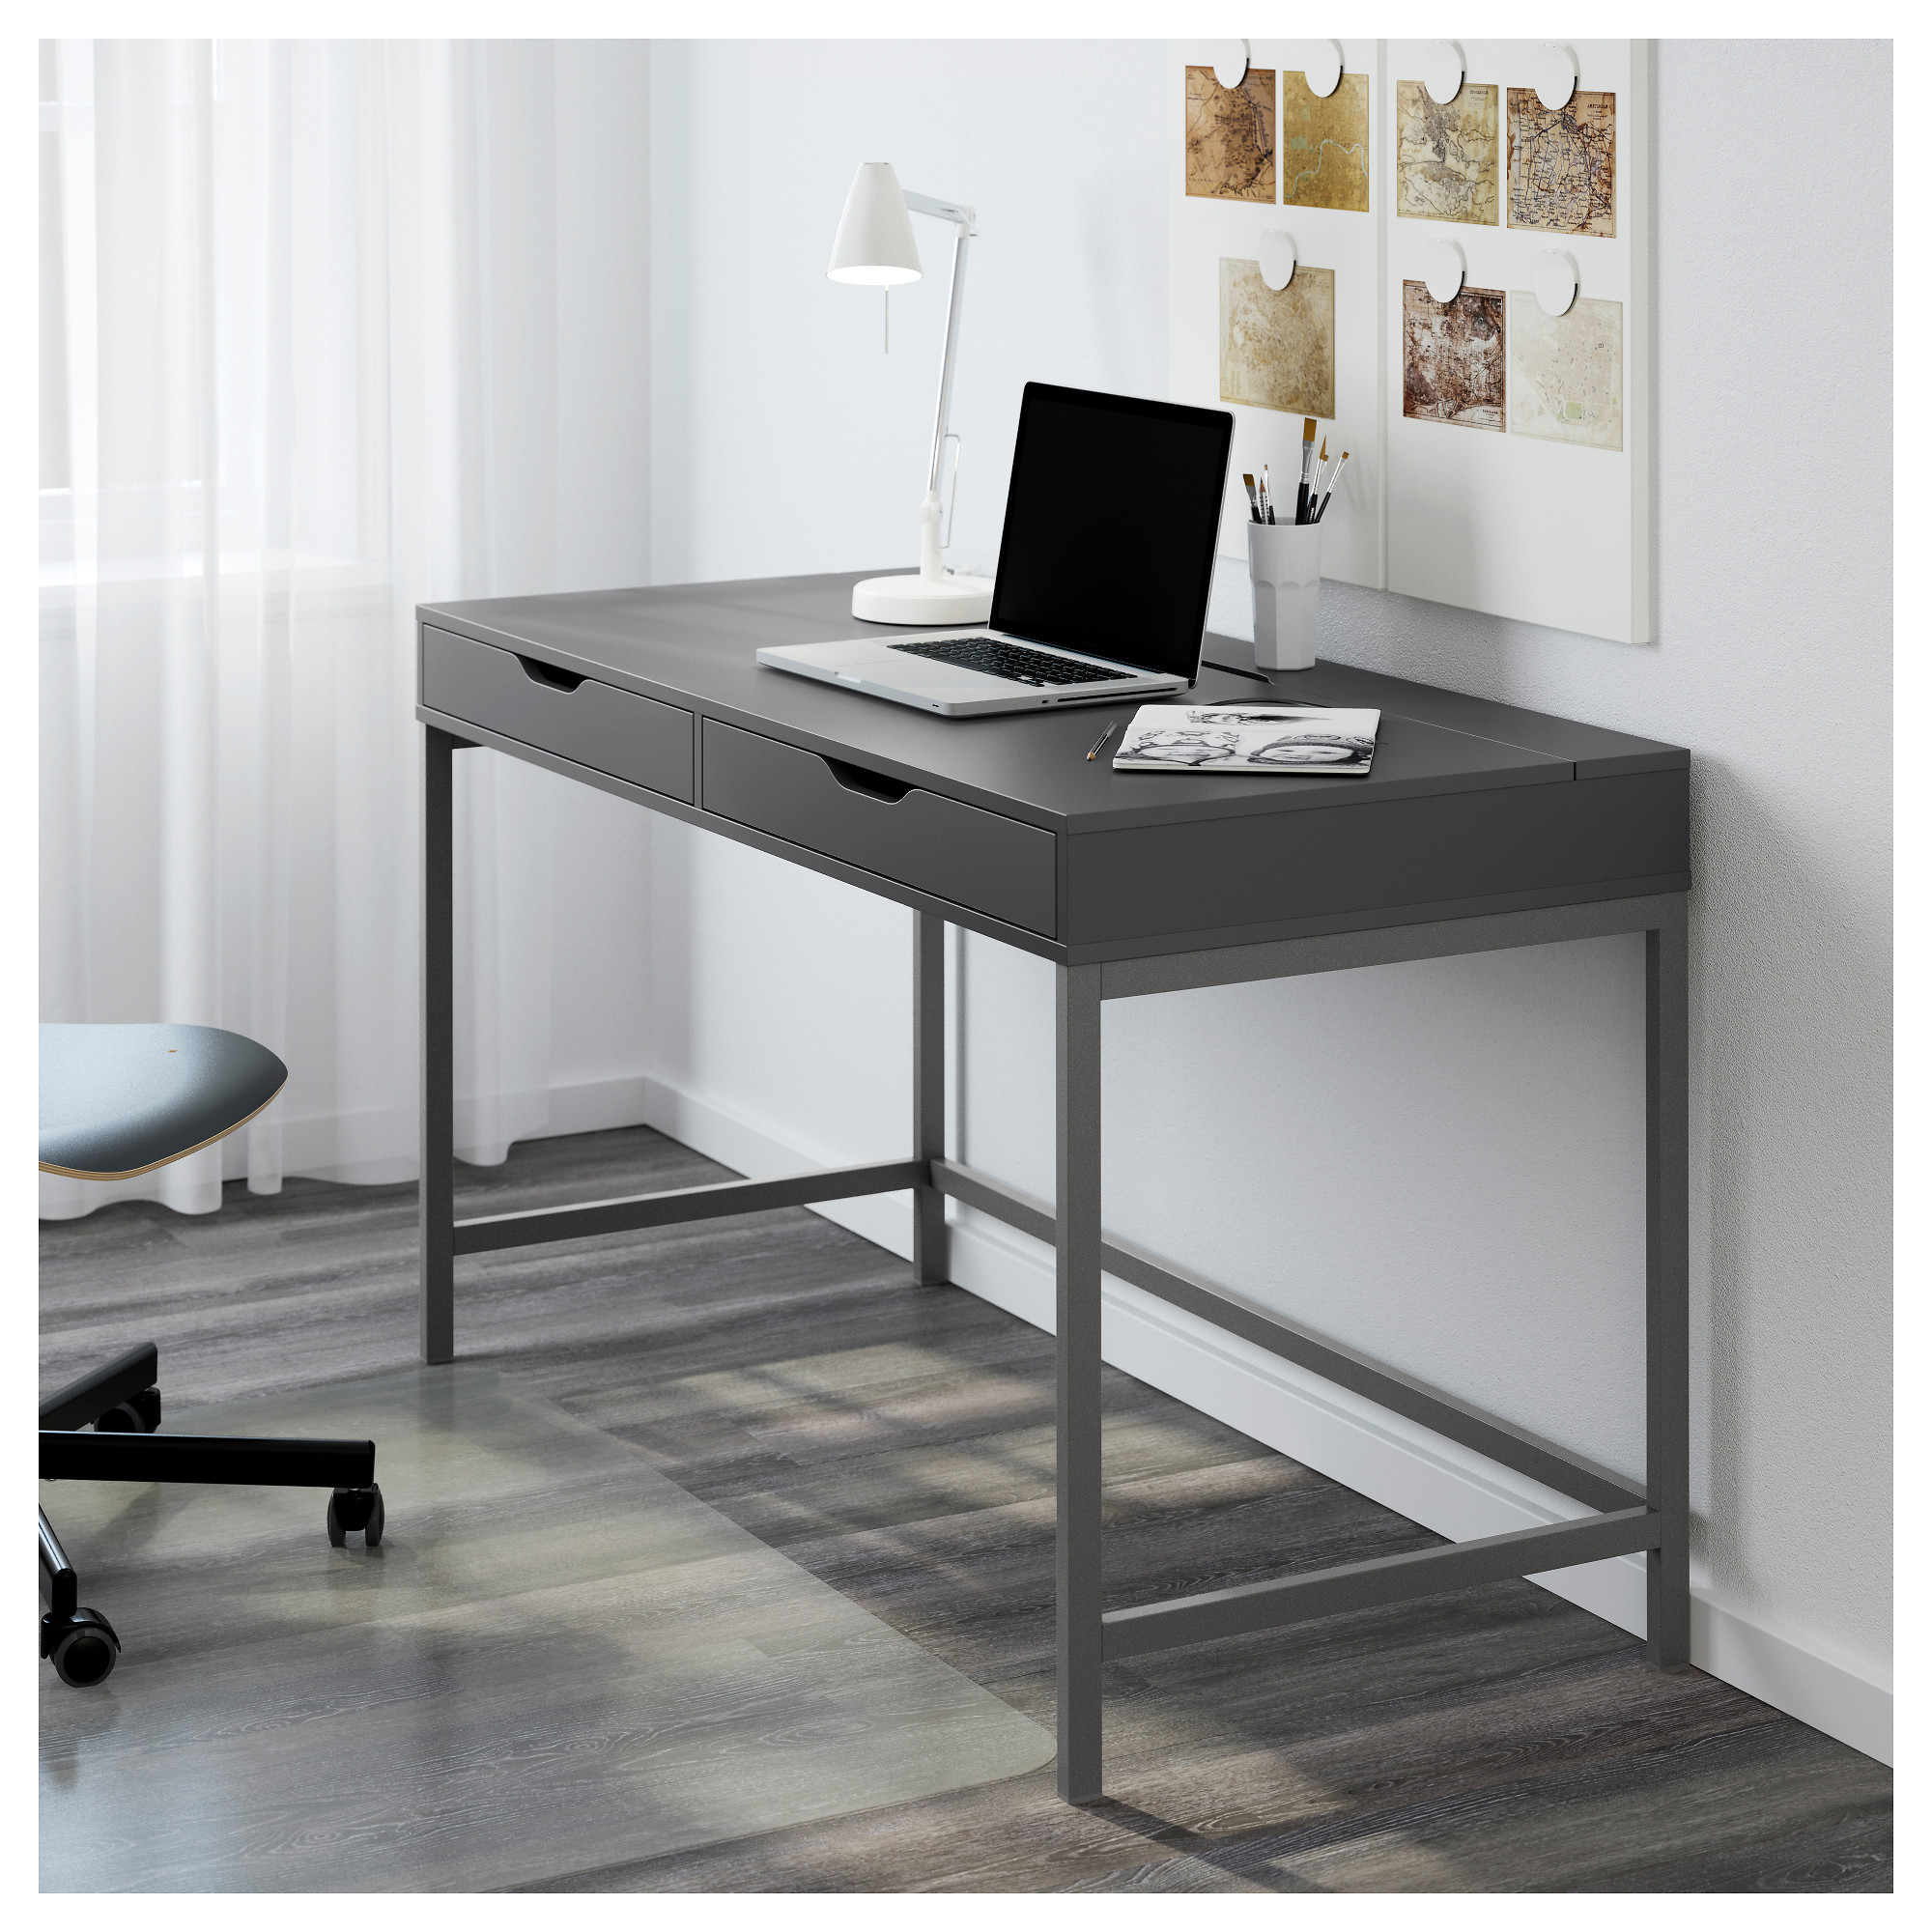 improvement cozy for dressing hutch improvementcozy add decor stain trend white unit as desk home on secretary ideen micke your with hemnes ikea interesting rooms